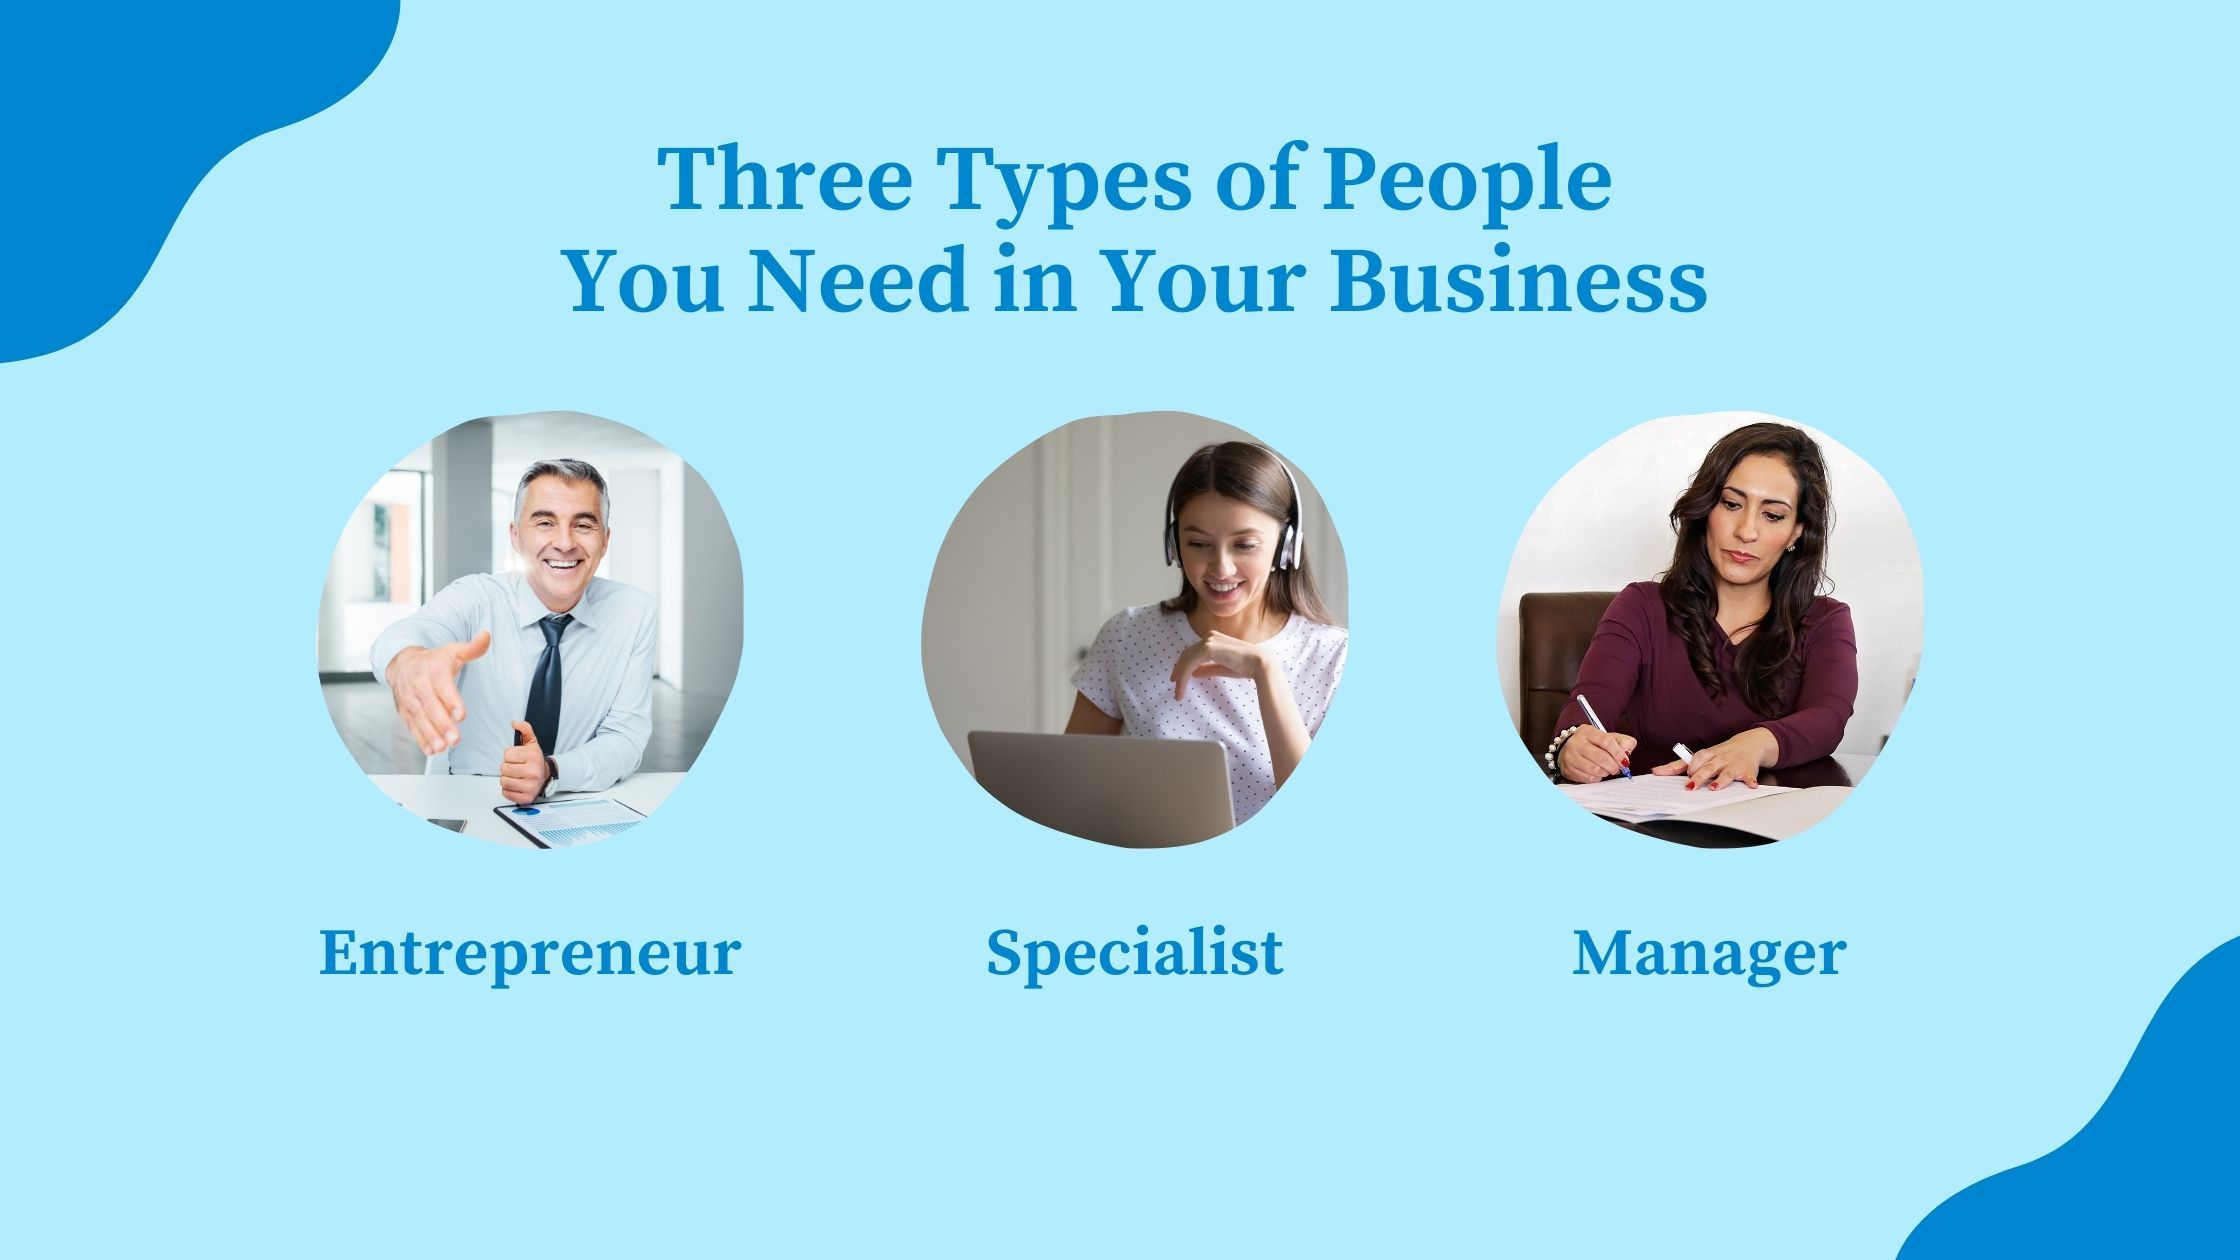 Three Types of People You Need in Your Business